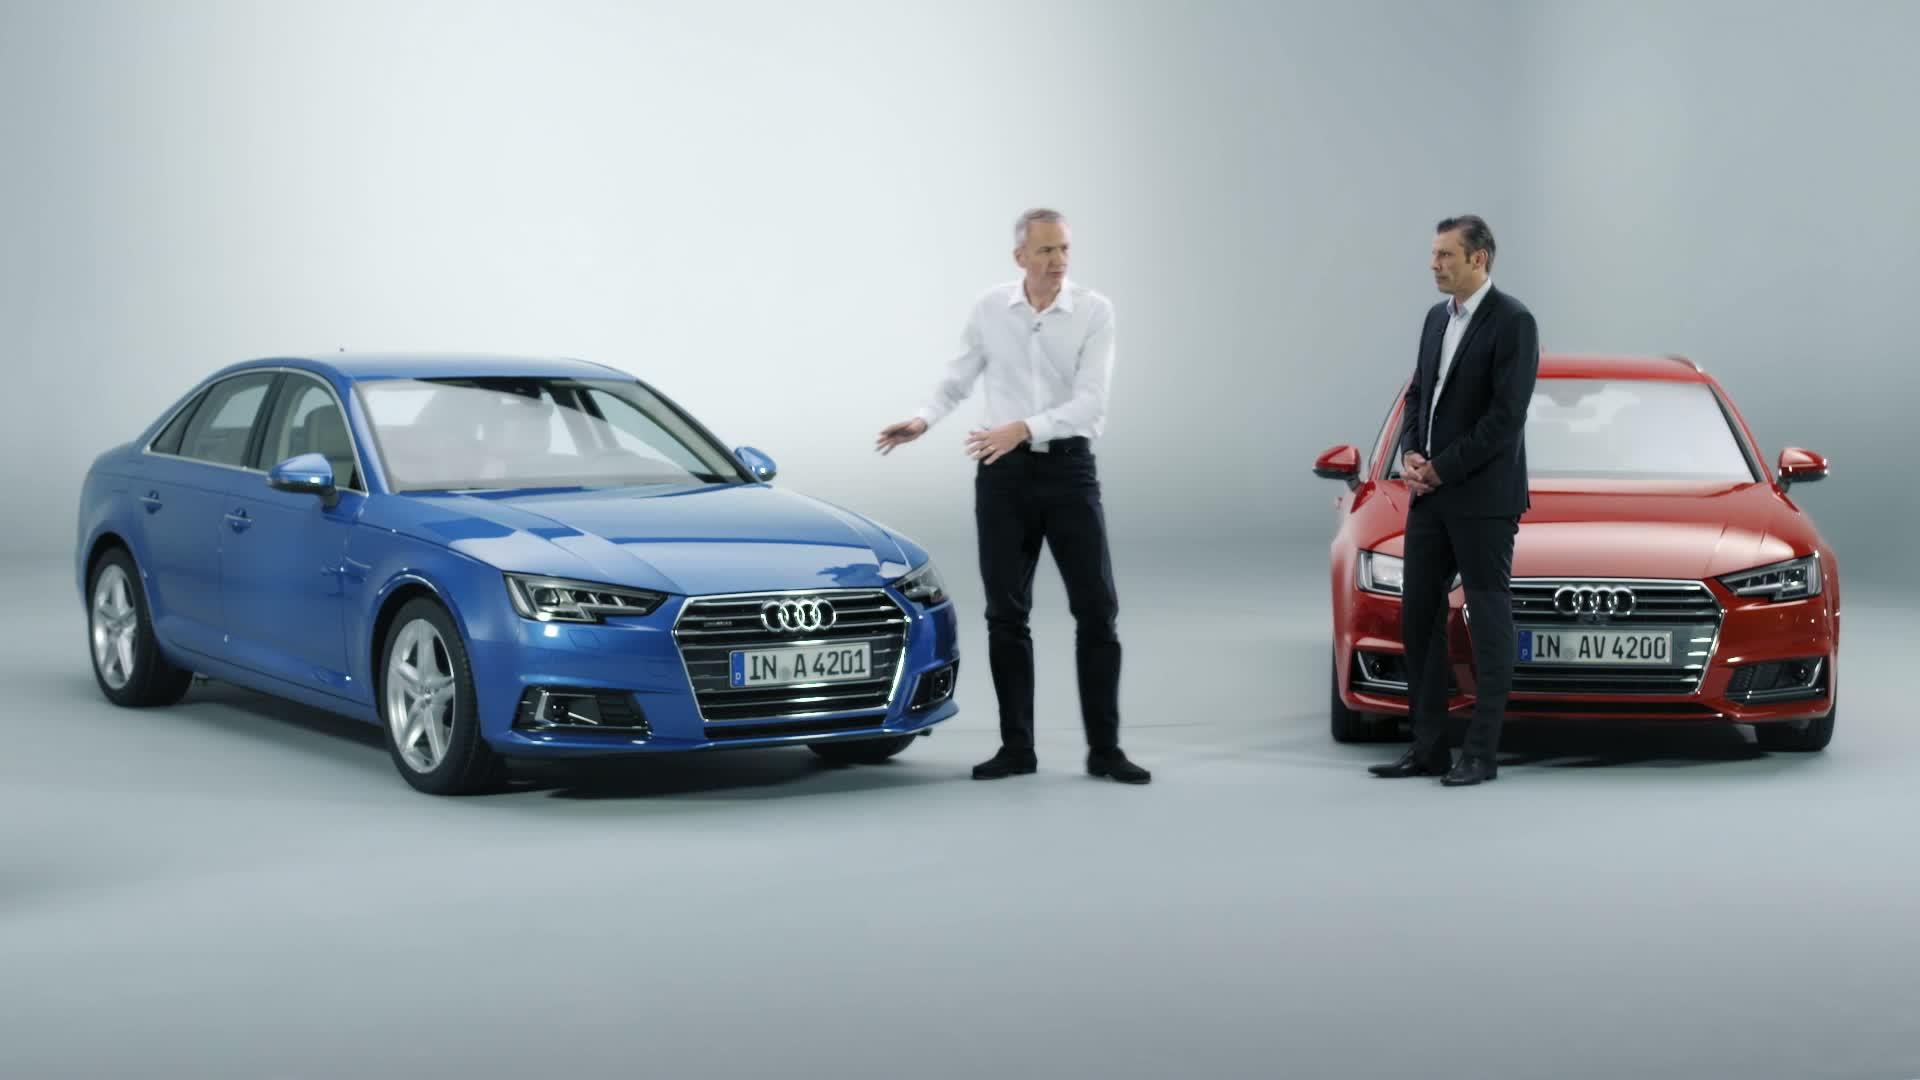 Exclusive world premiere of the new Audi A4